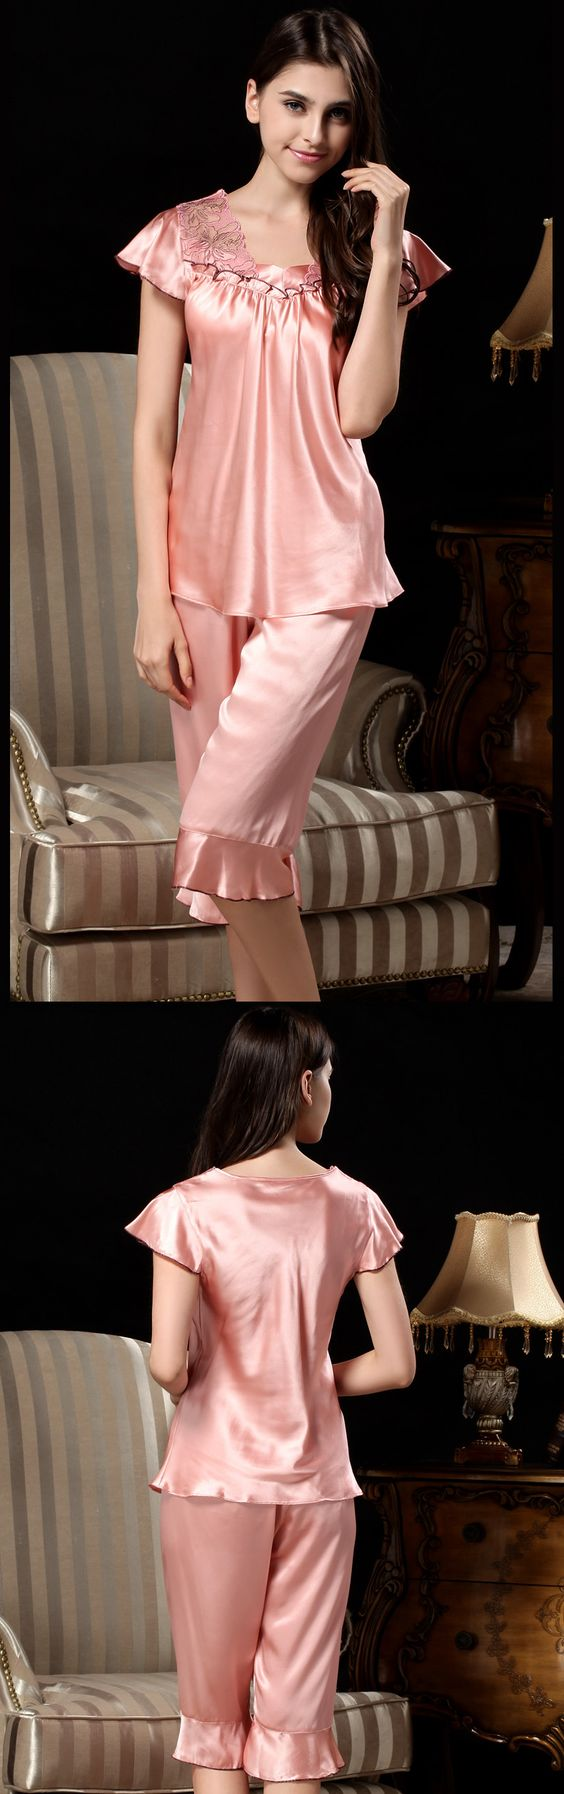 silk robes where to buy silk pajamas white silk chemise https ...